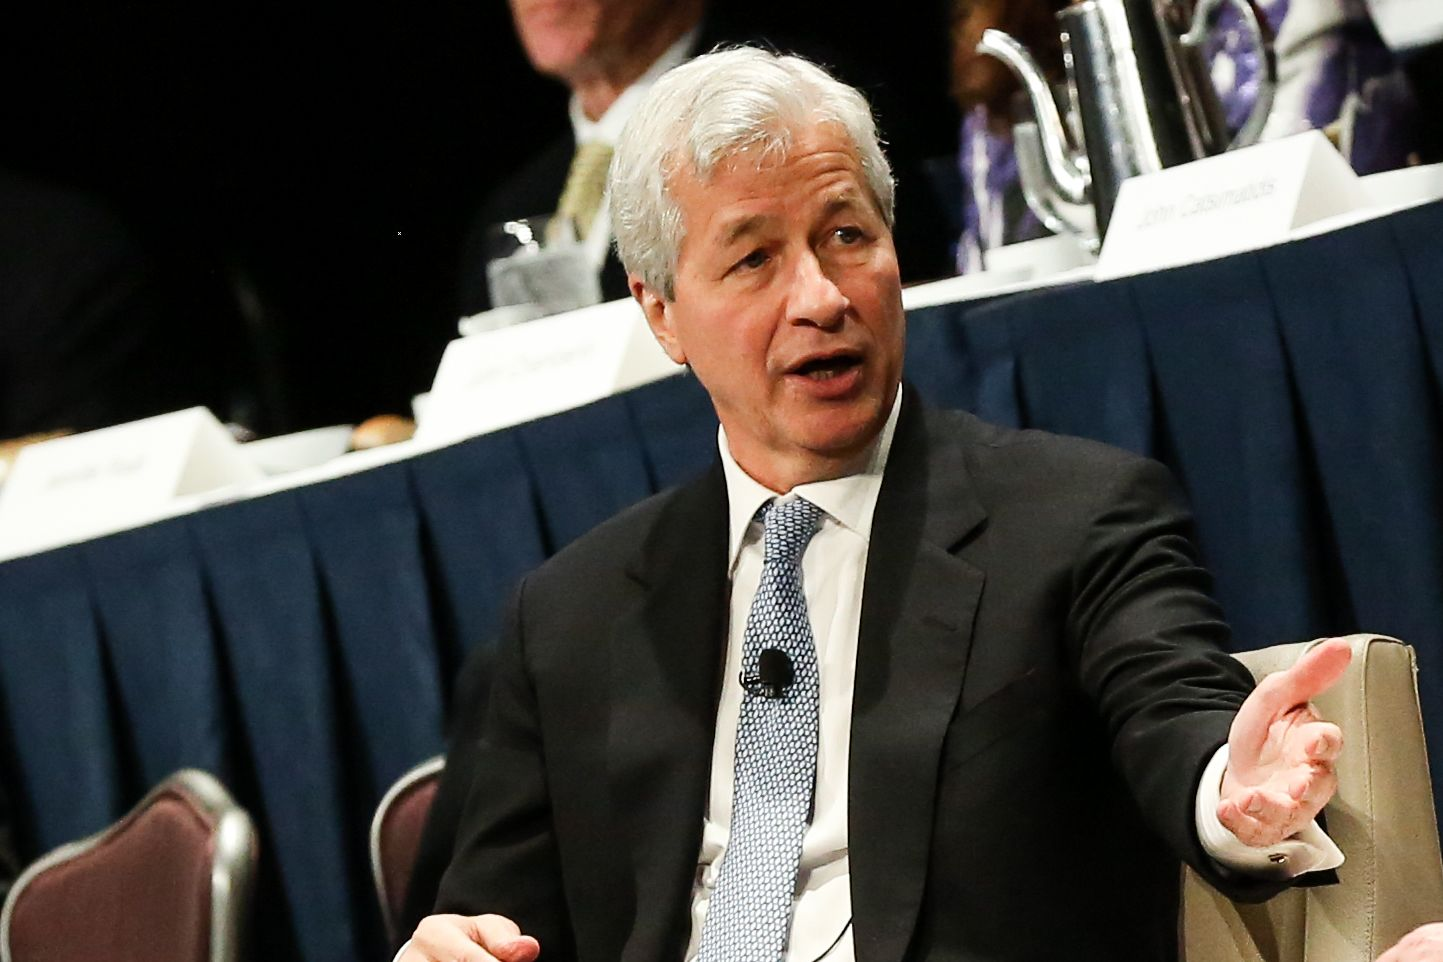 Dimon plays down Facebook's cryptocurrency experiment in call